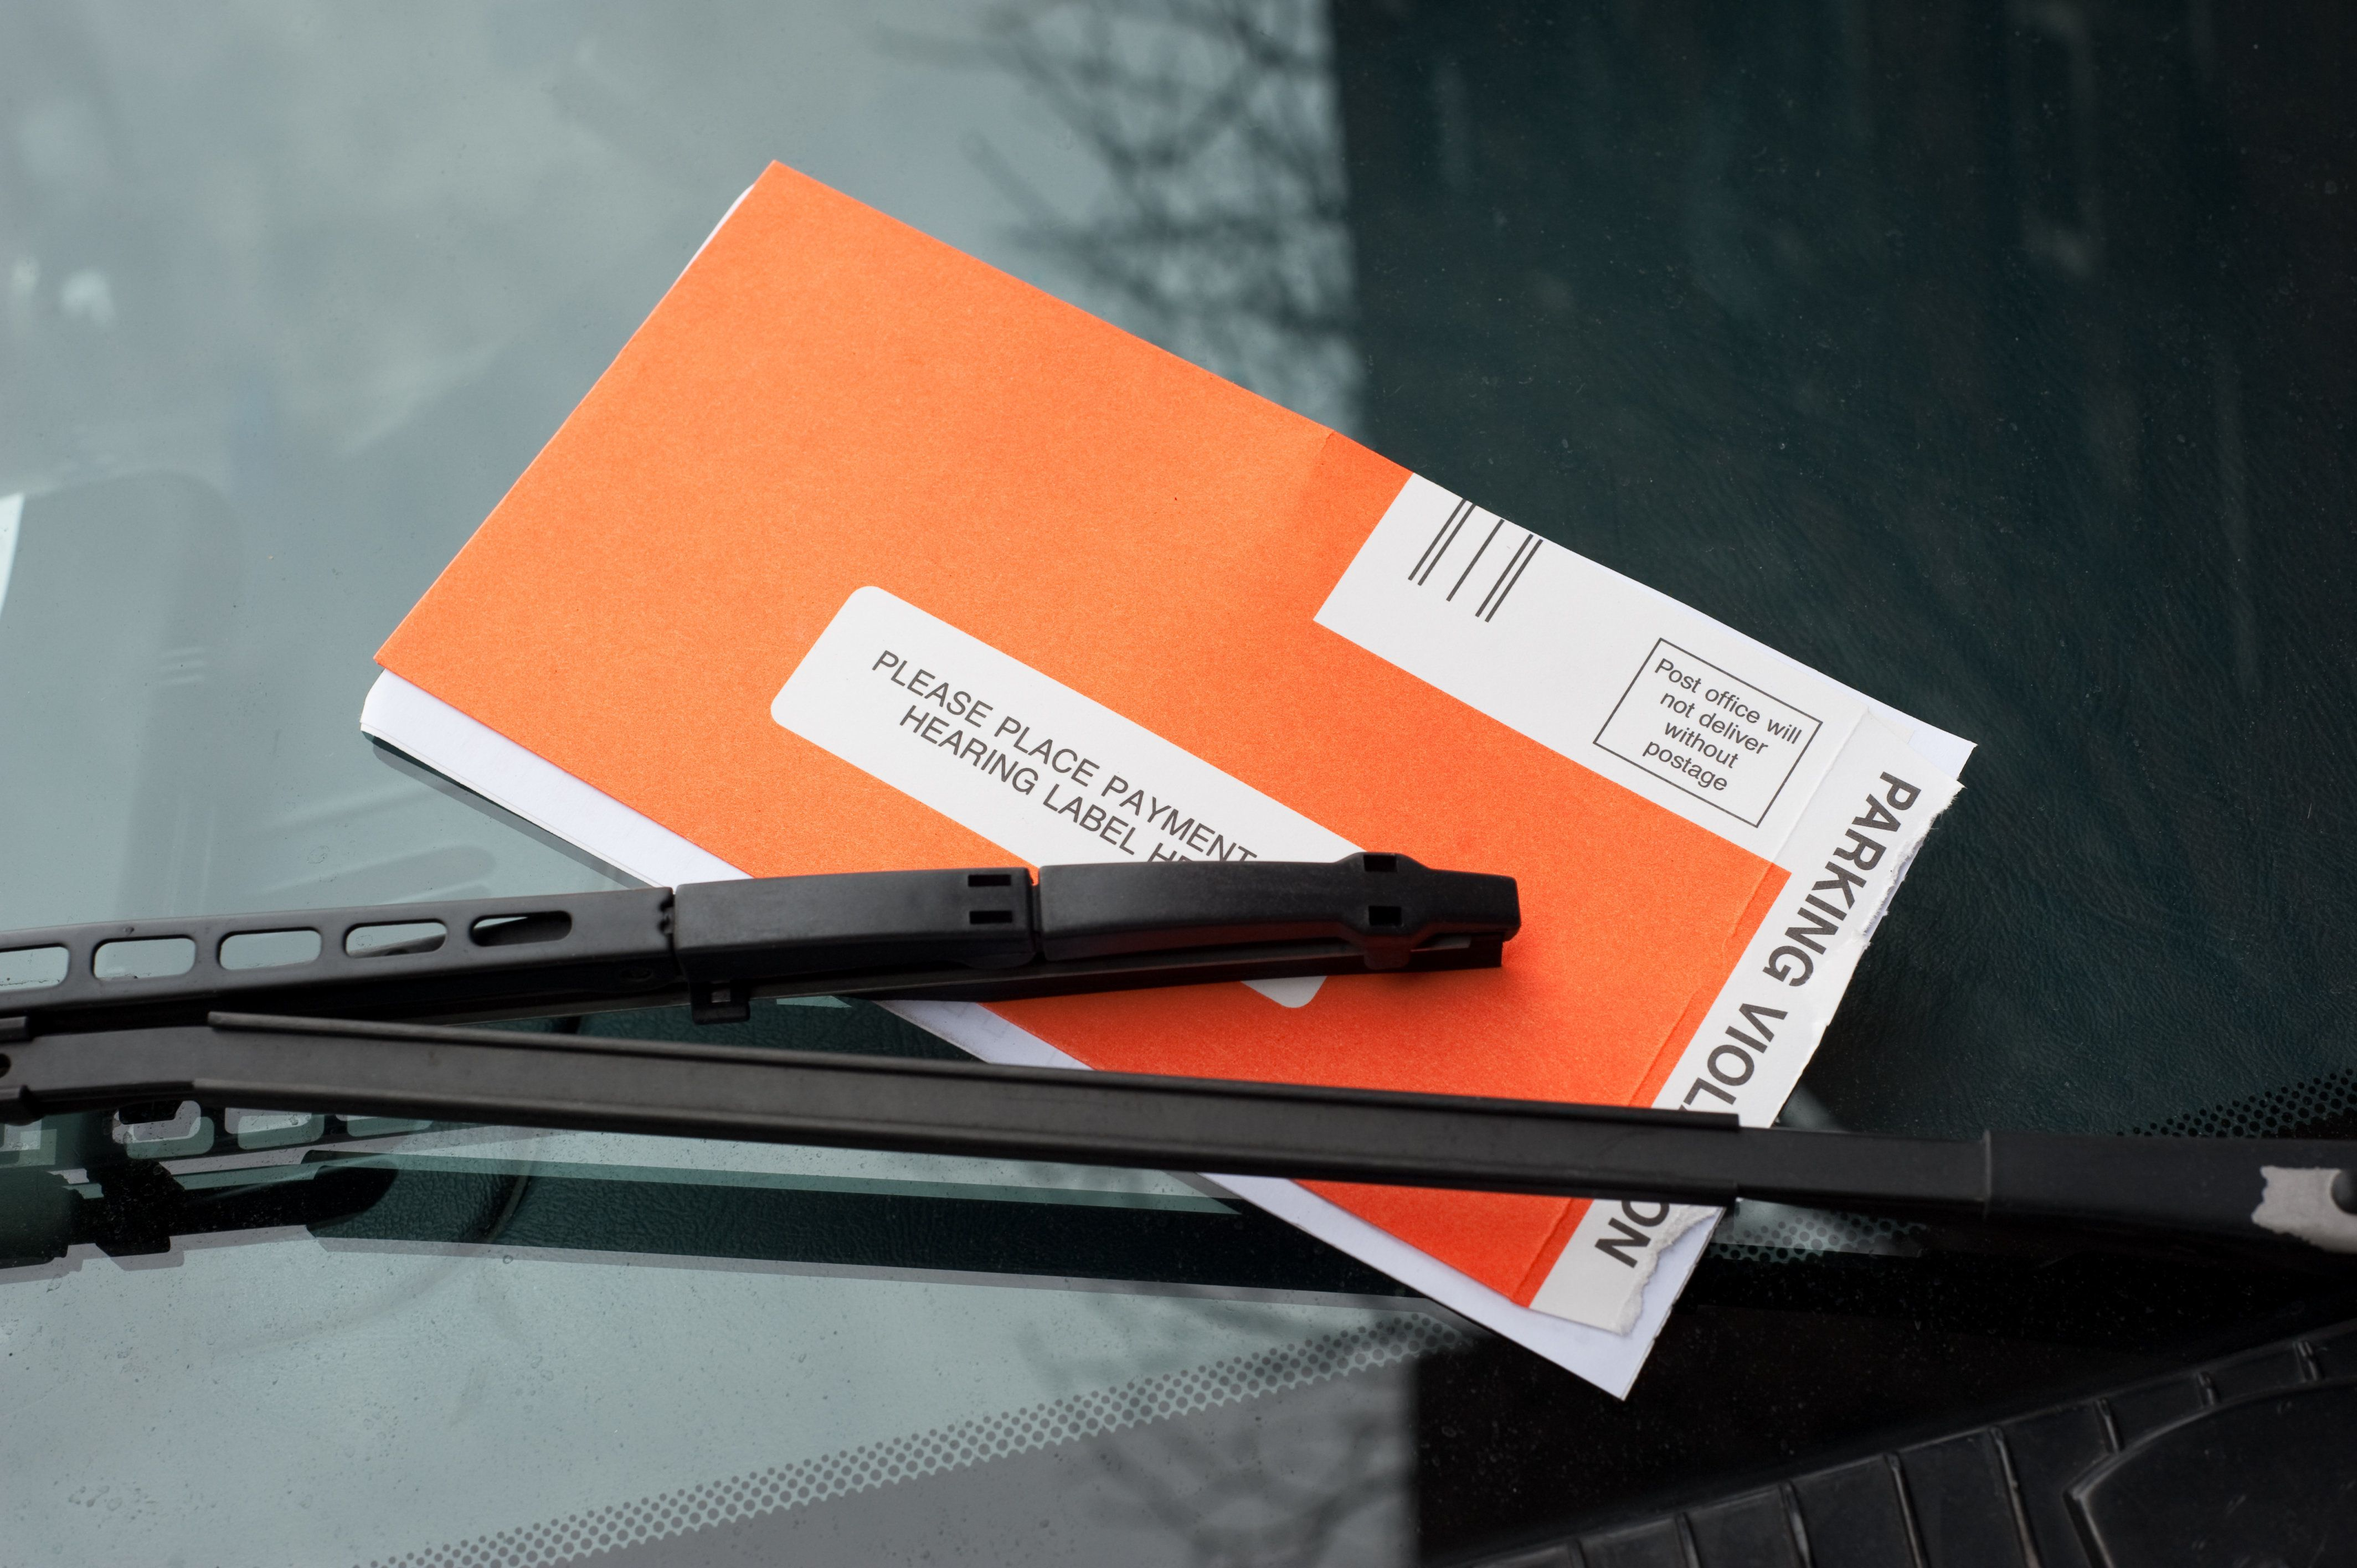 A little more than half a million parking tickets are being dismissed or refunded by New York City officials thanks to a smal